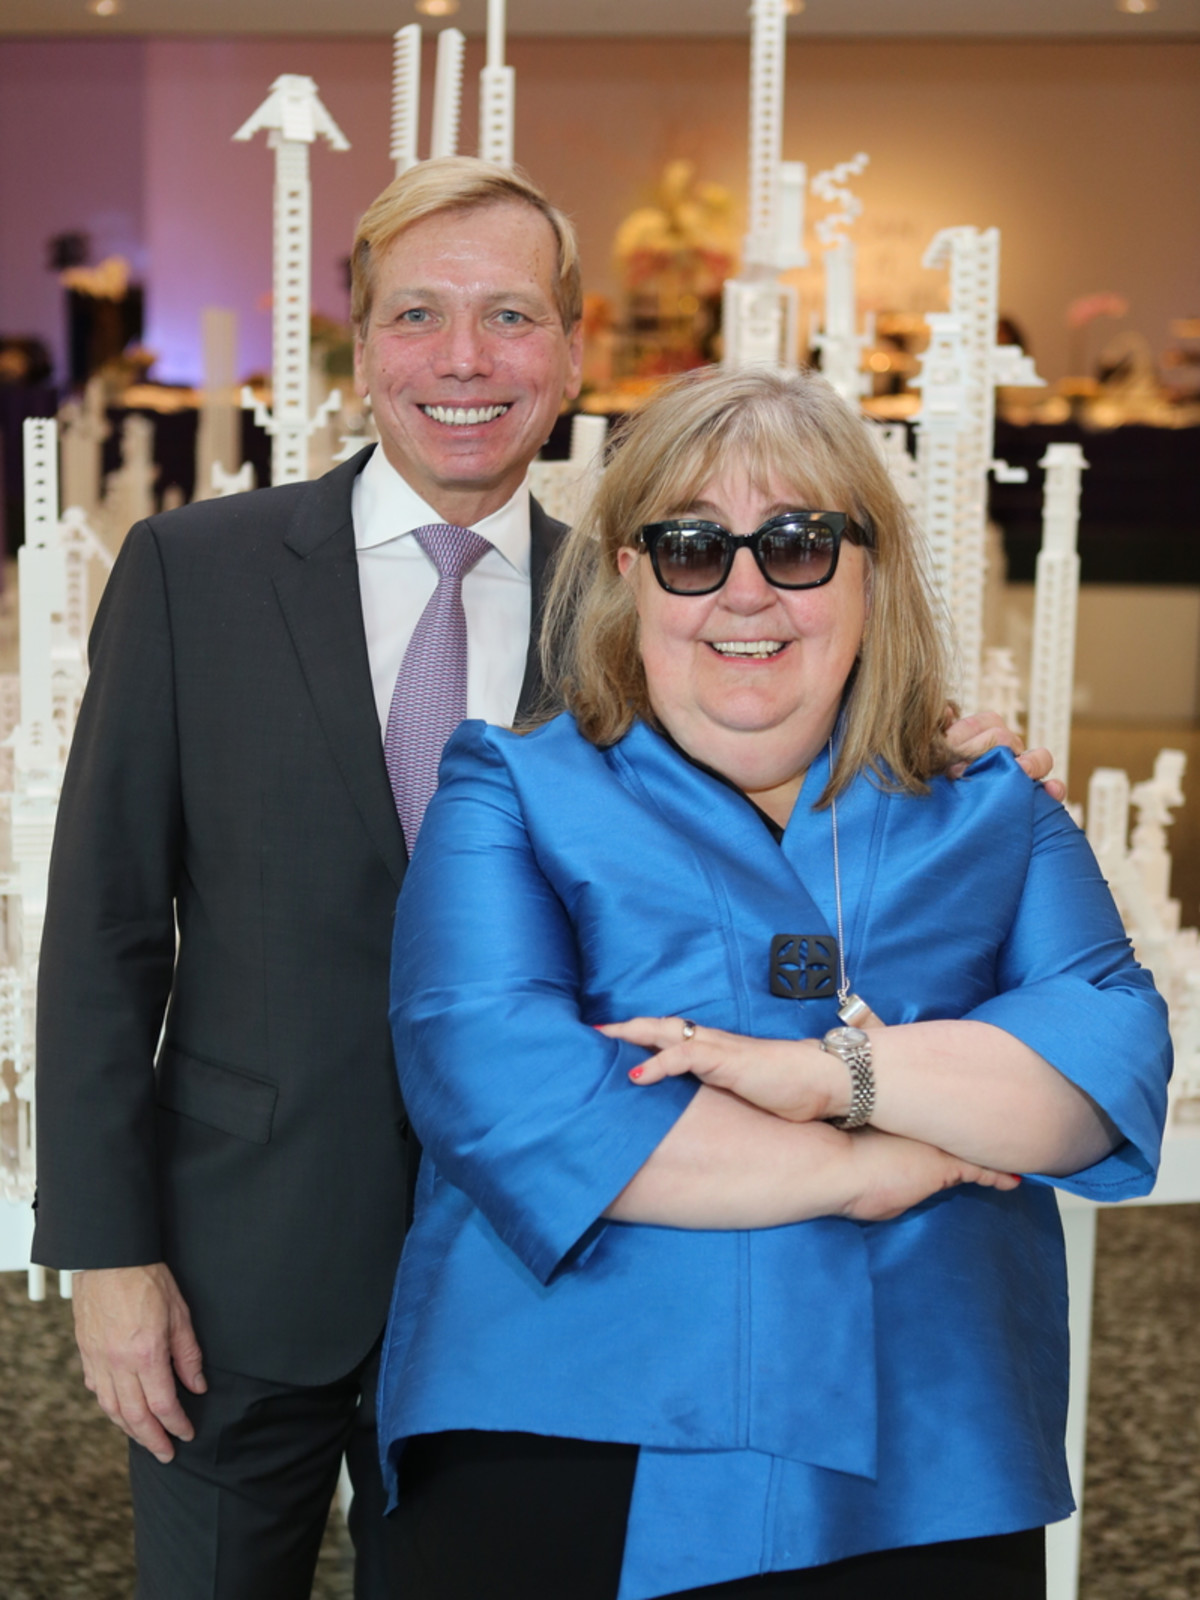 News, Mayor Sylvester Turner Inauguration, Jan. 2016, MFAH, Jonathan Glus, Cindy Clifford